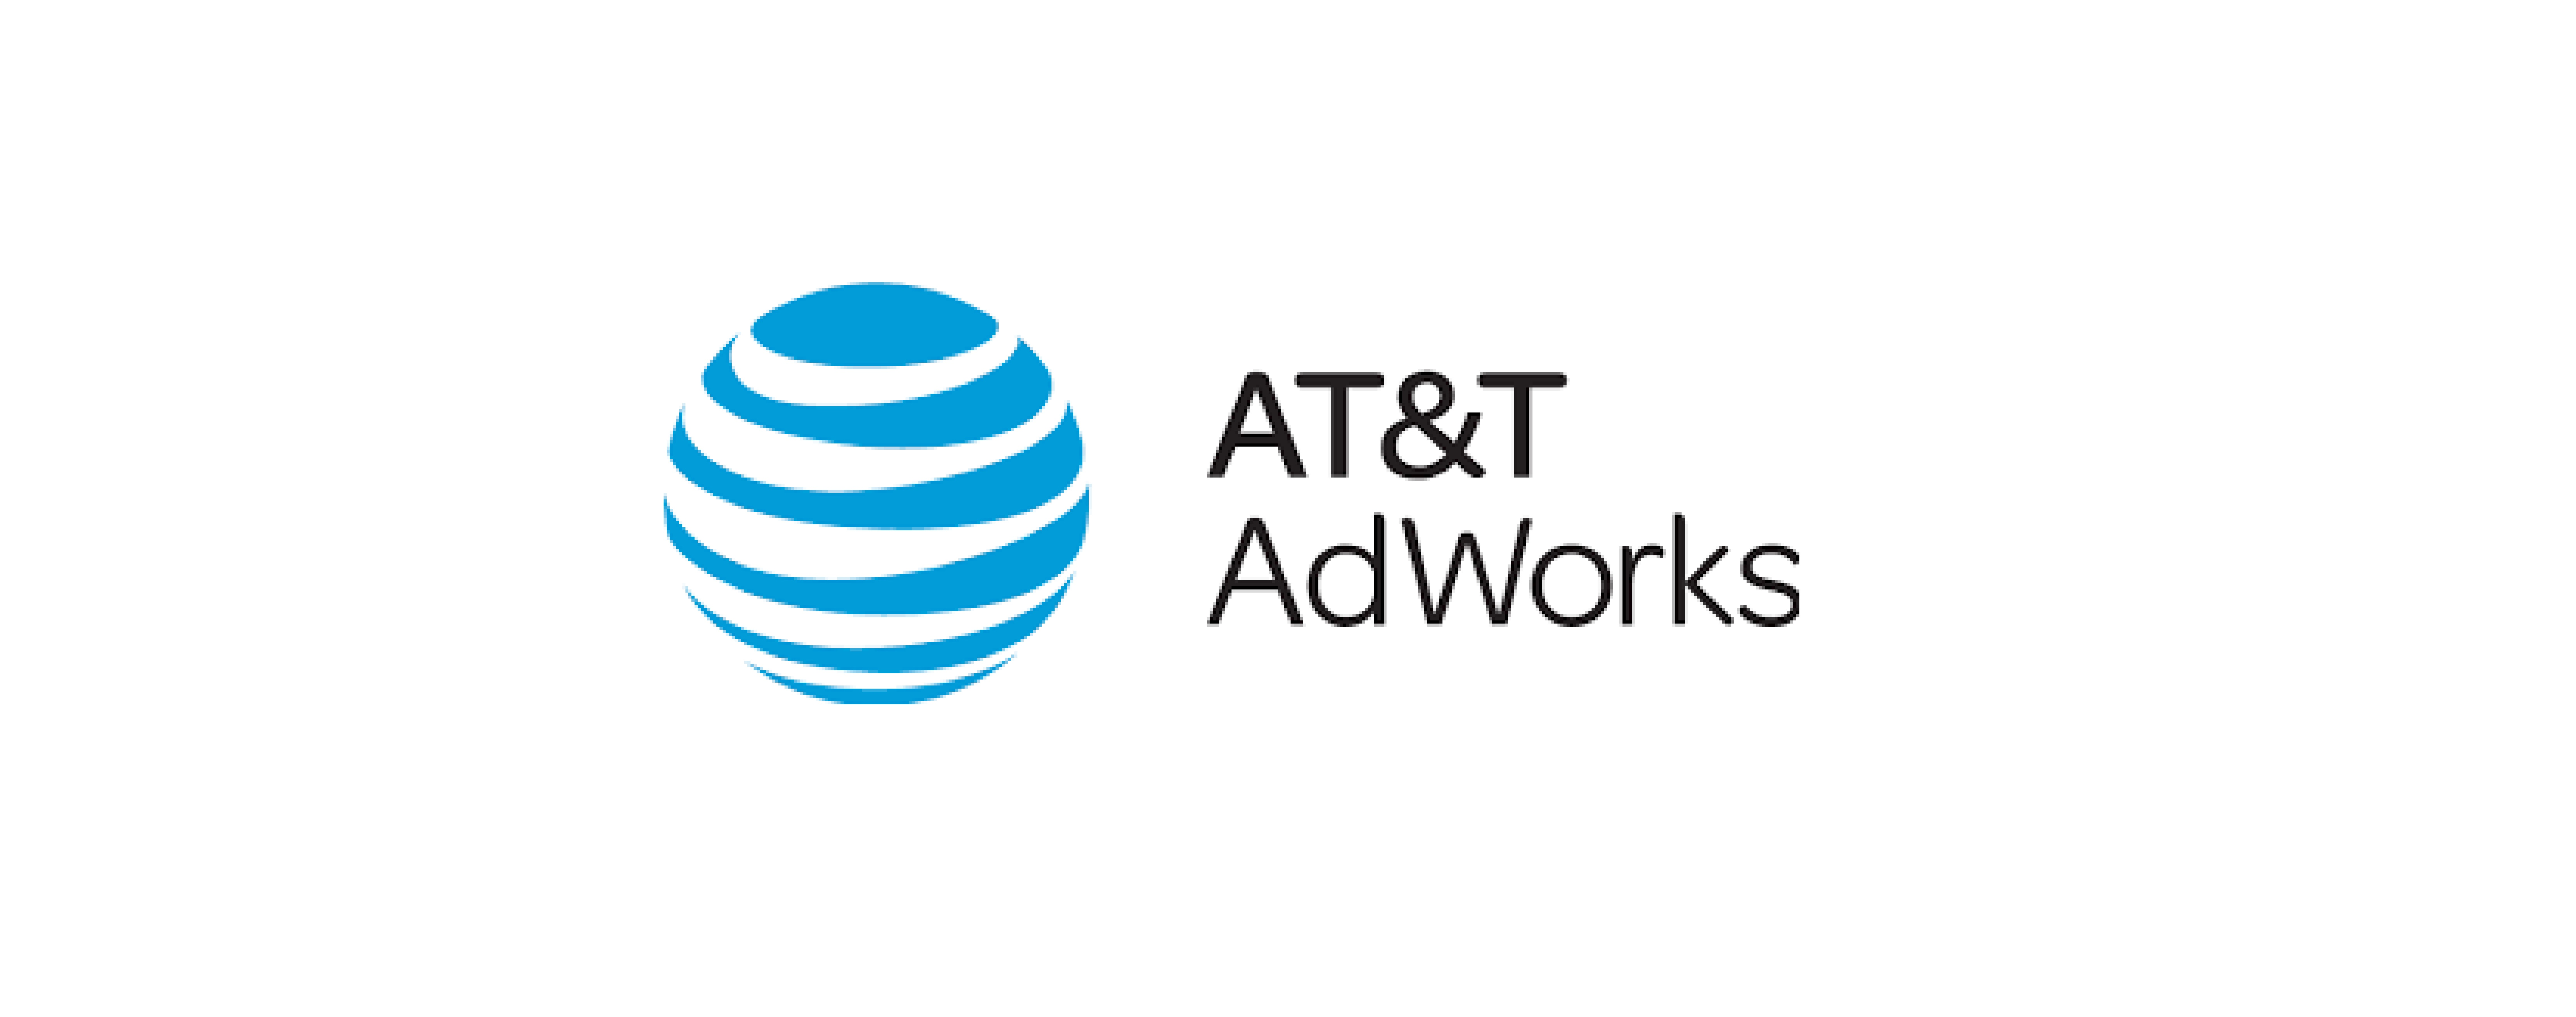 AT&T ad works